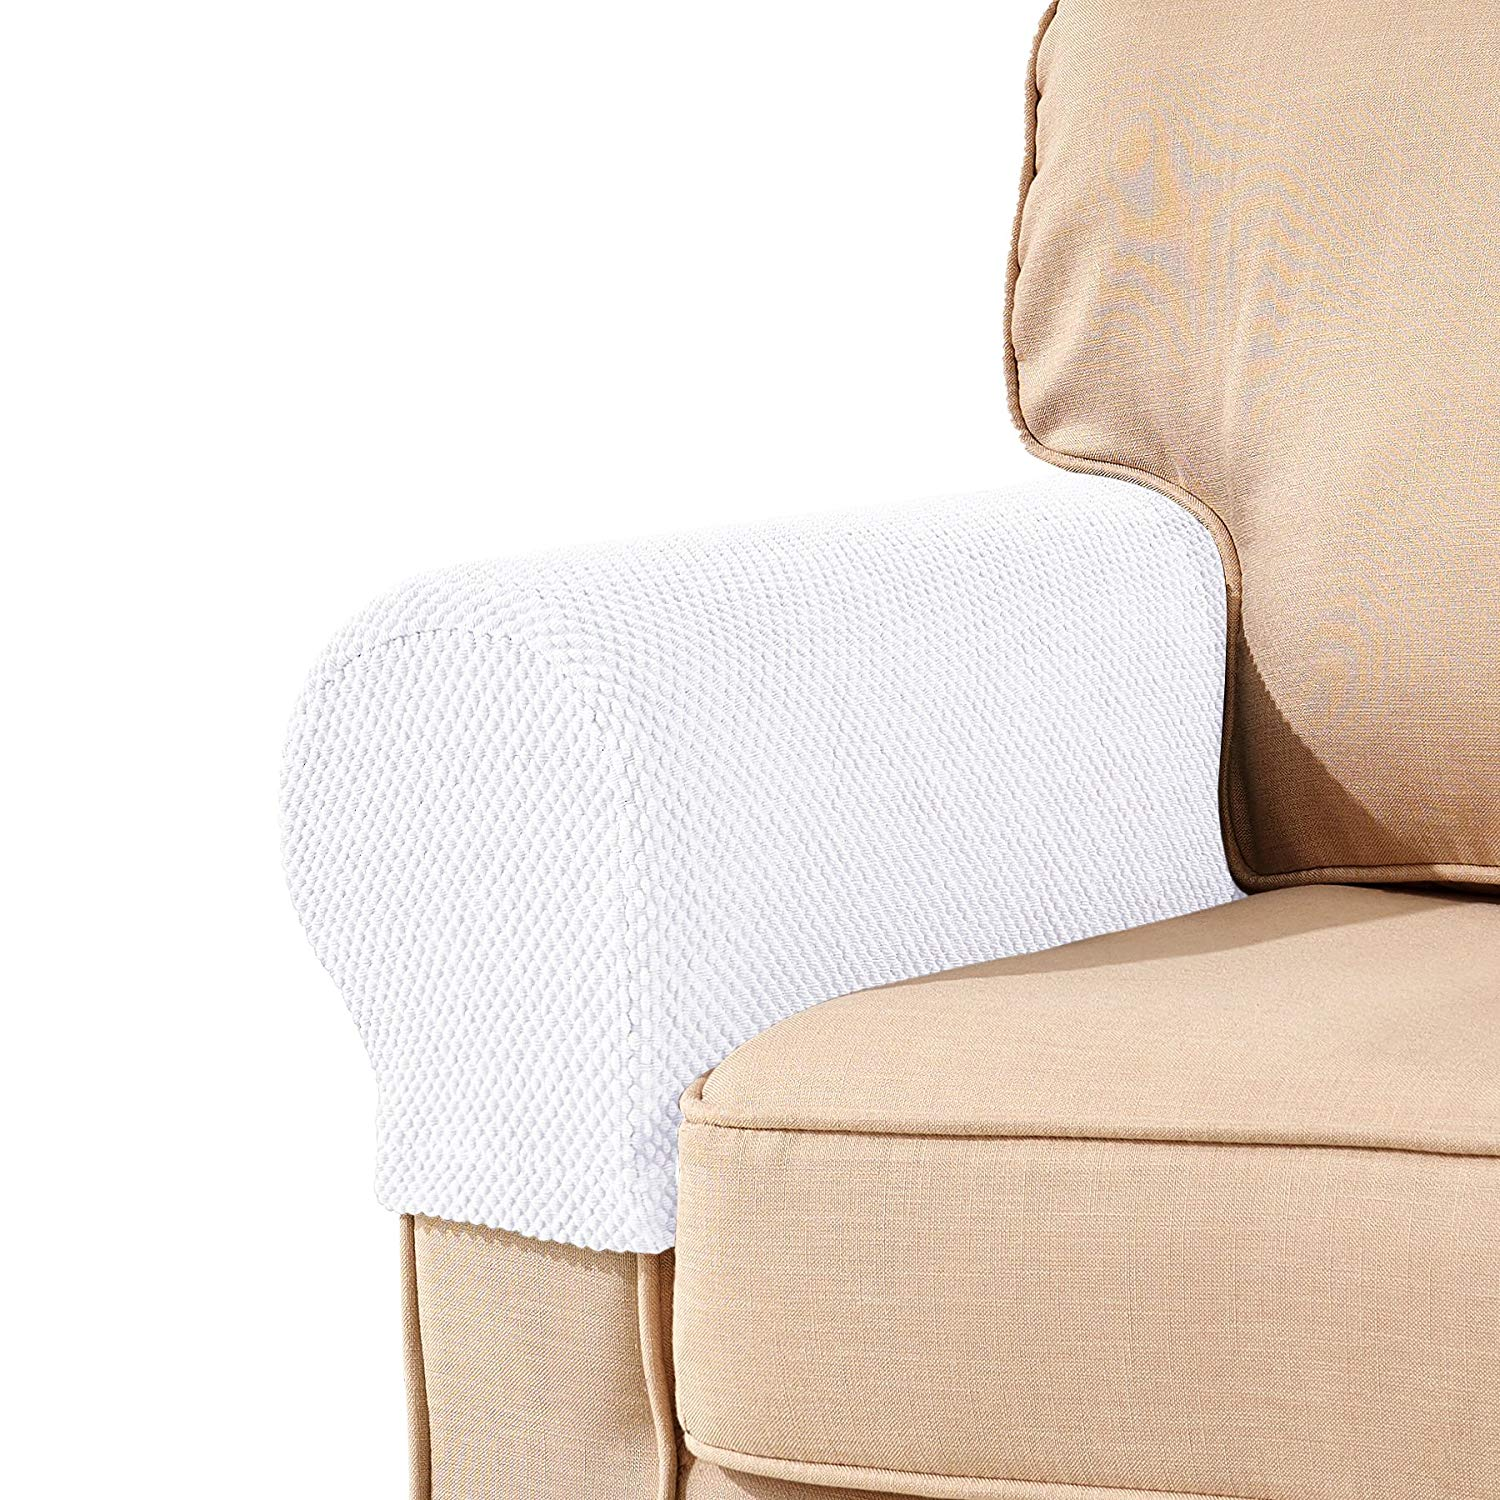 walmart armchair covers cross back dining chairs subrtex spandex stretch fabric armrest sofa slipcovers set of 2 white jacquard com